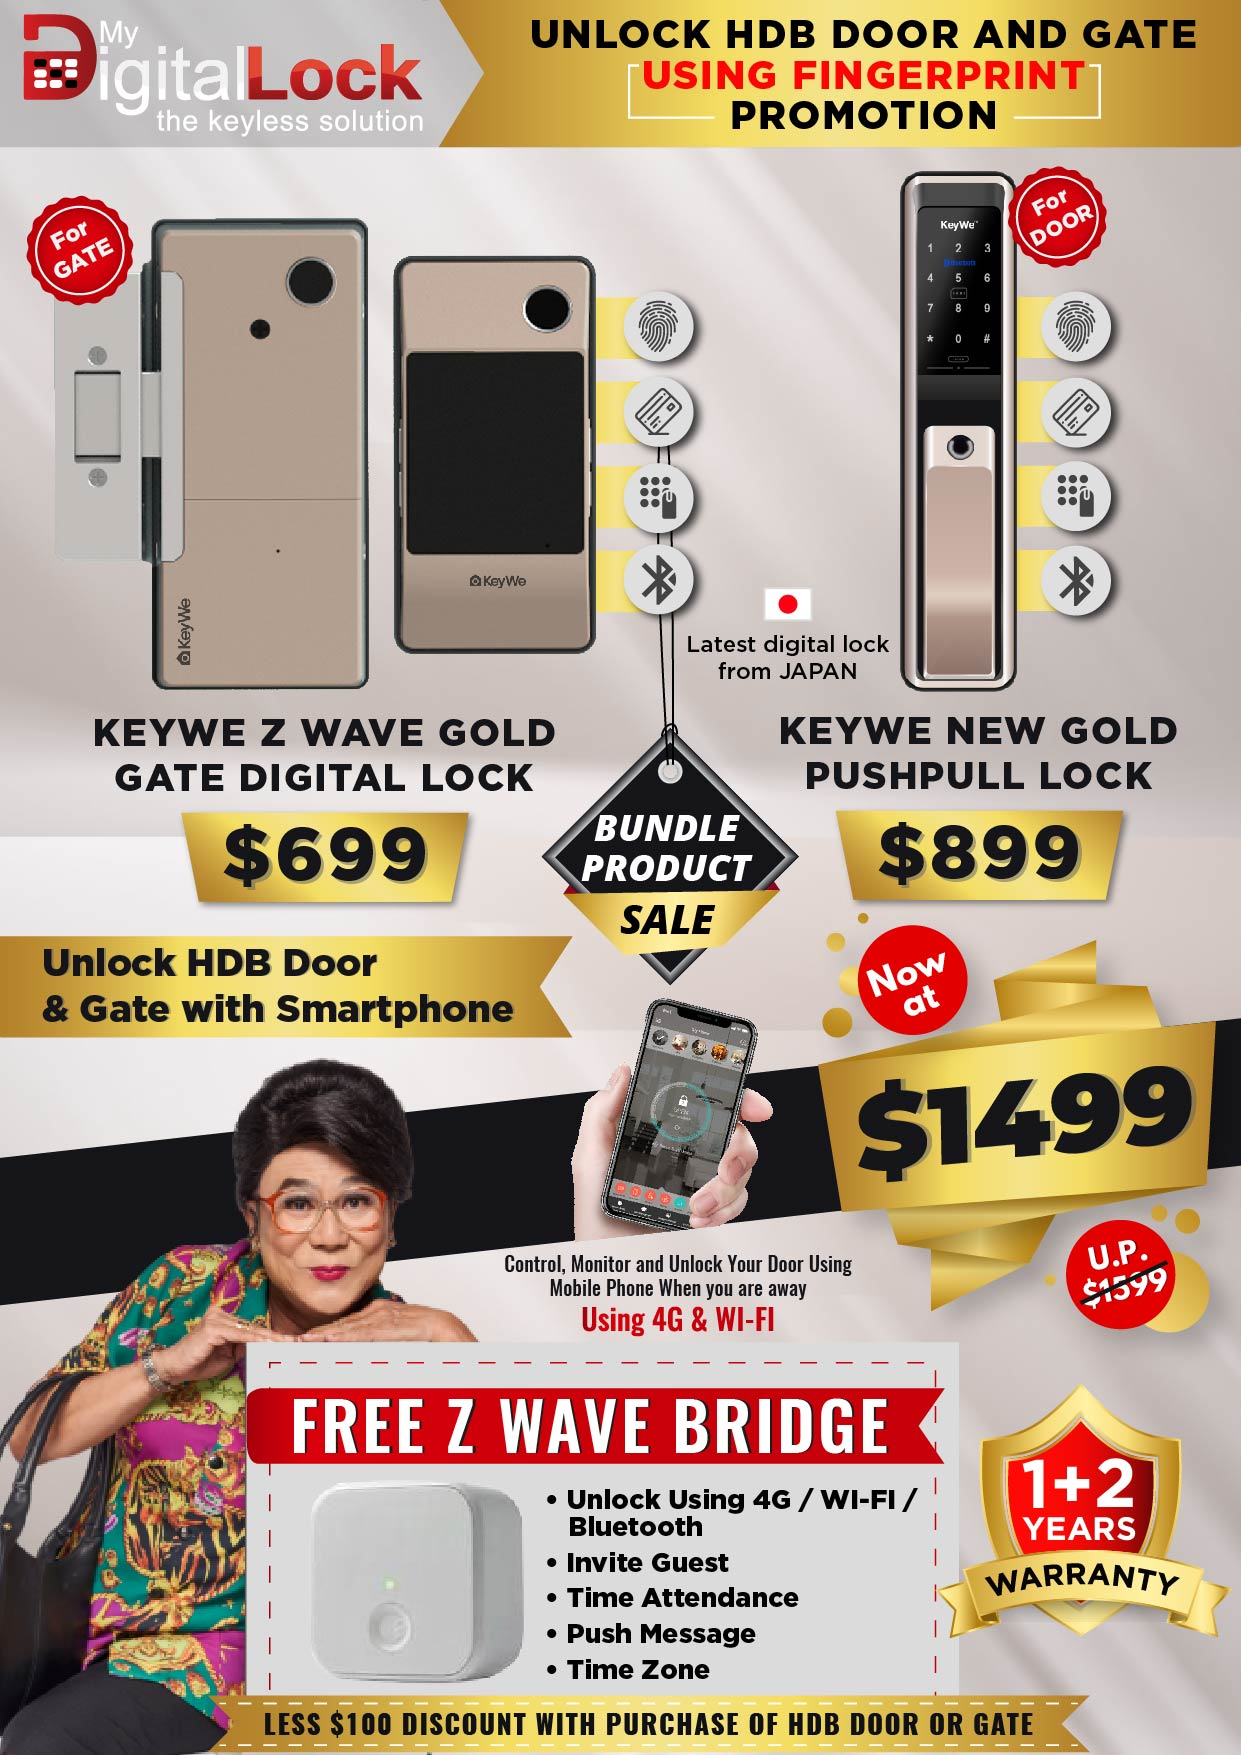 KEYWE Z Wave Gate and Gold Push Pull Digital Lock Promotion